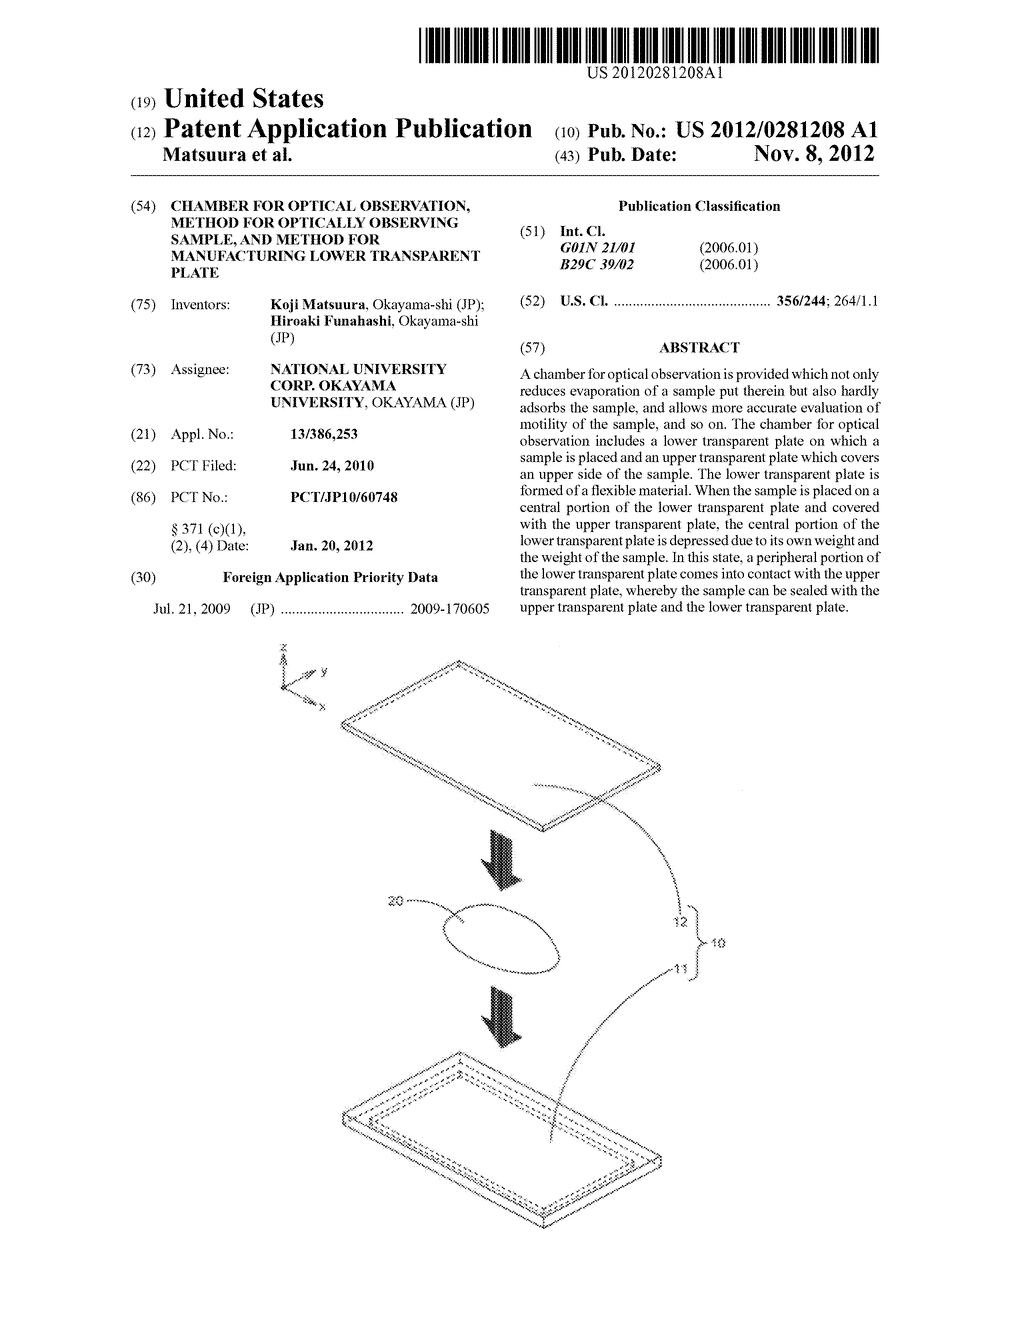 CHAMBER FOR OPTICAL OBSERVATION, METHOD FOR OPTICALLY OBSERVING SAMPLE,     AND METHOD FOR MANUFACTURING LOWER TRANSPARENT PLATE - diagram, schematic, and image 01